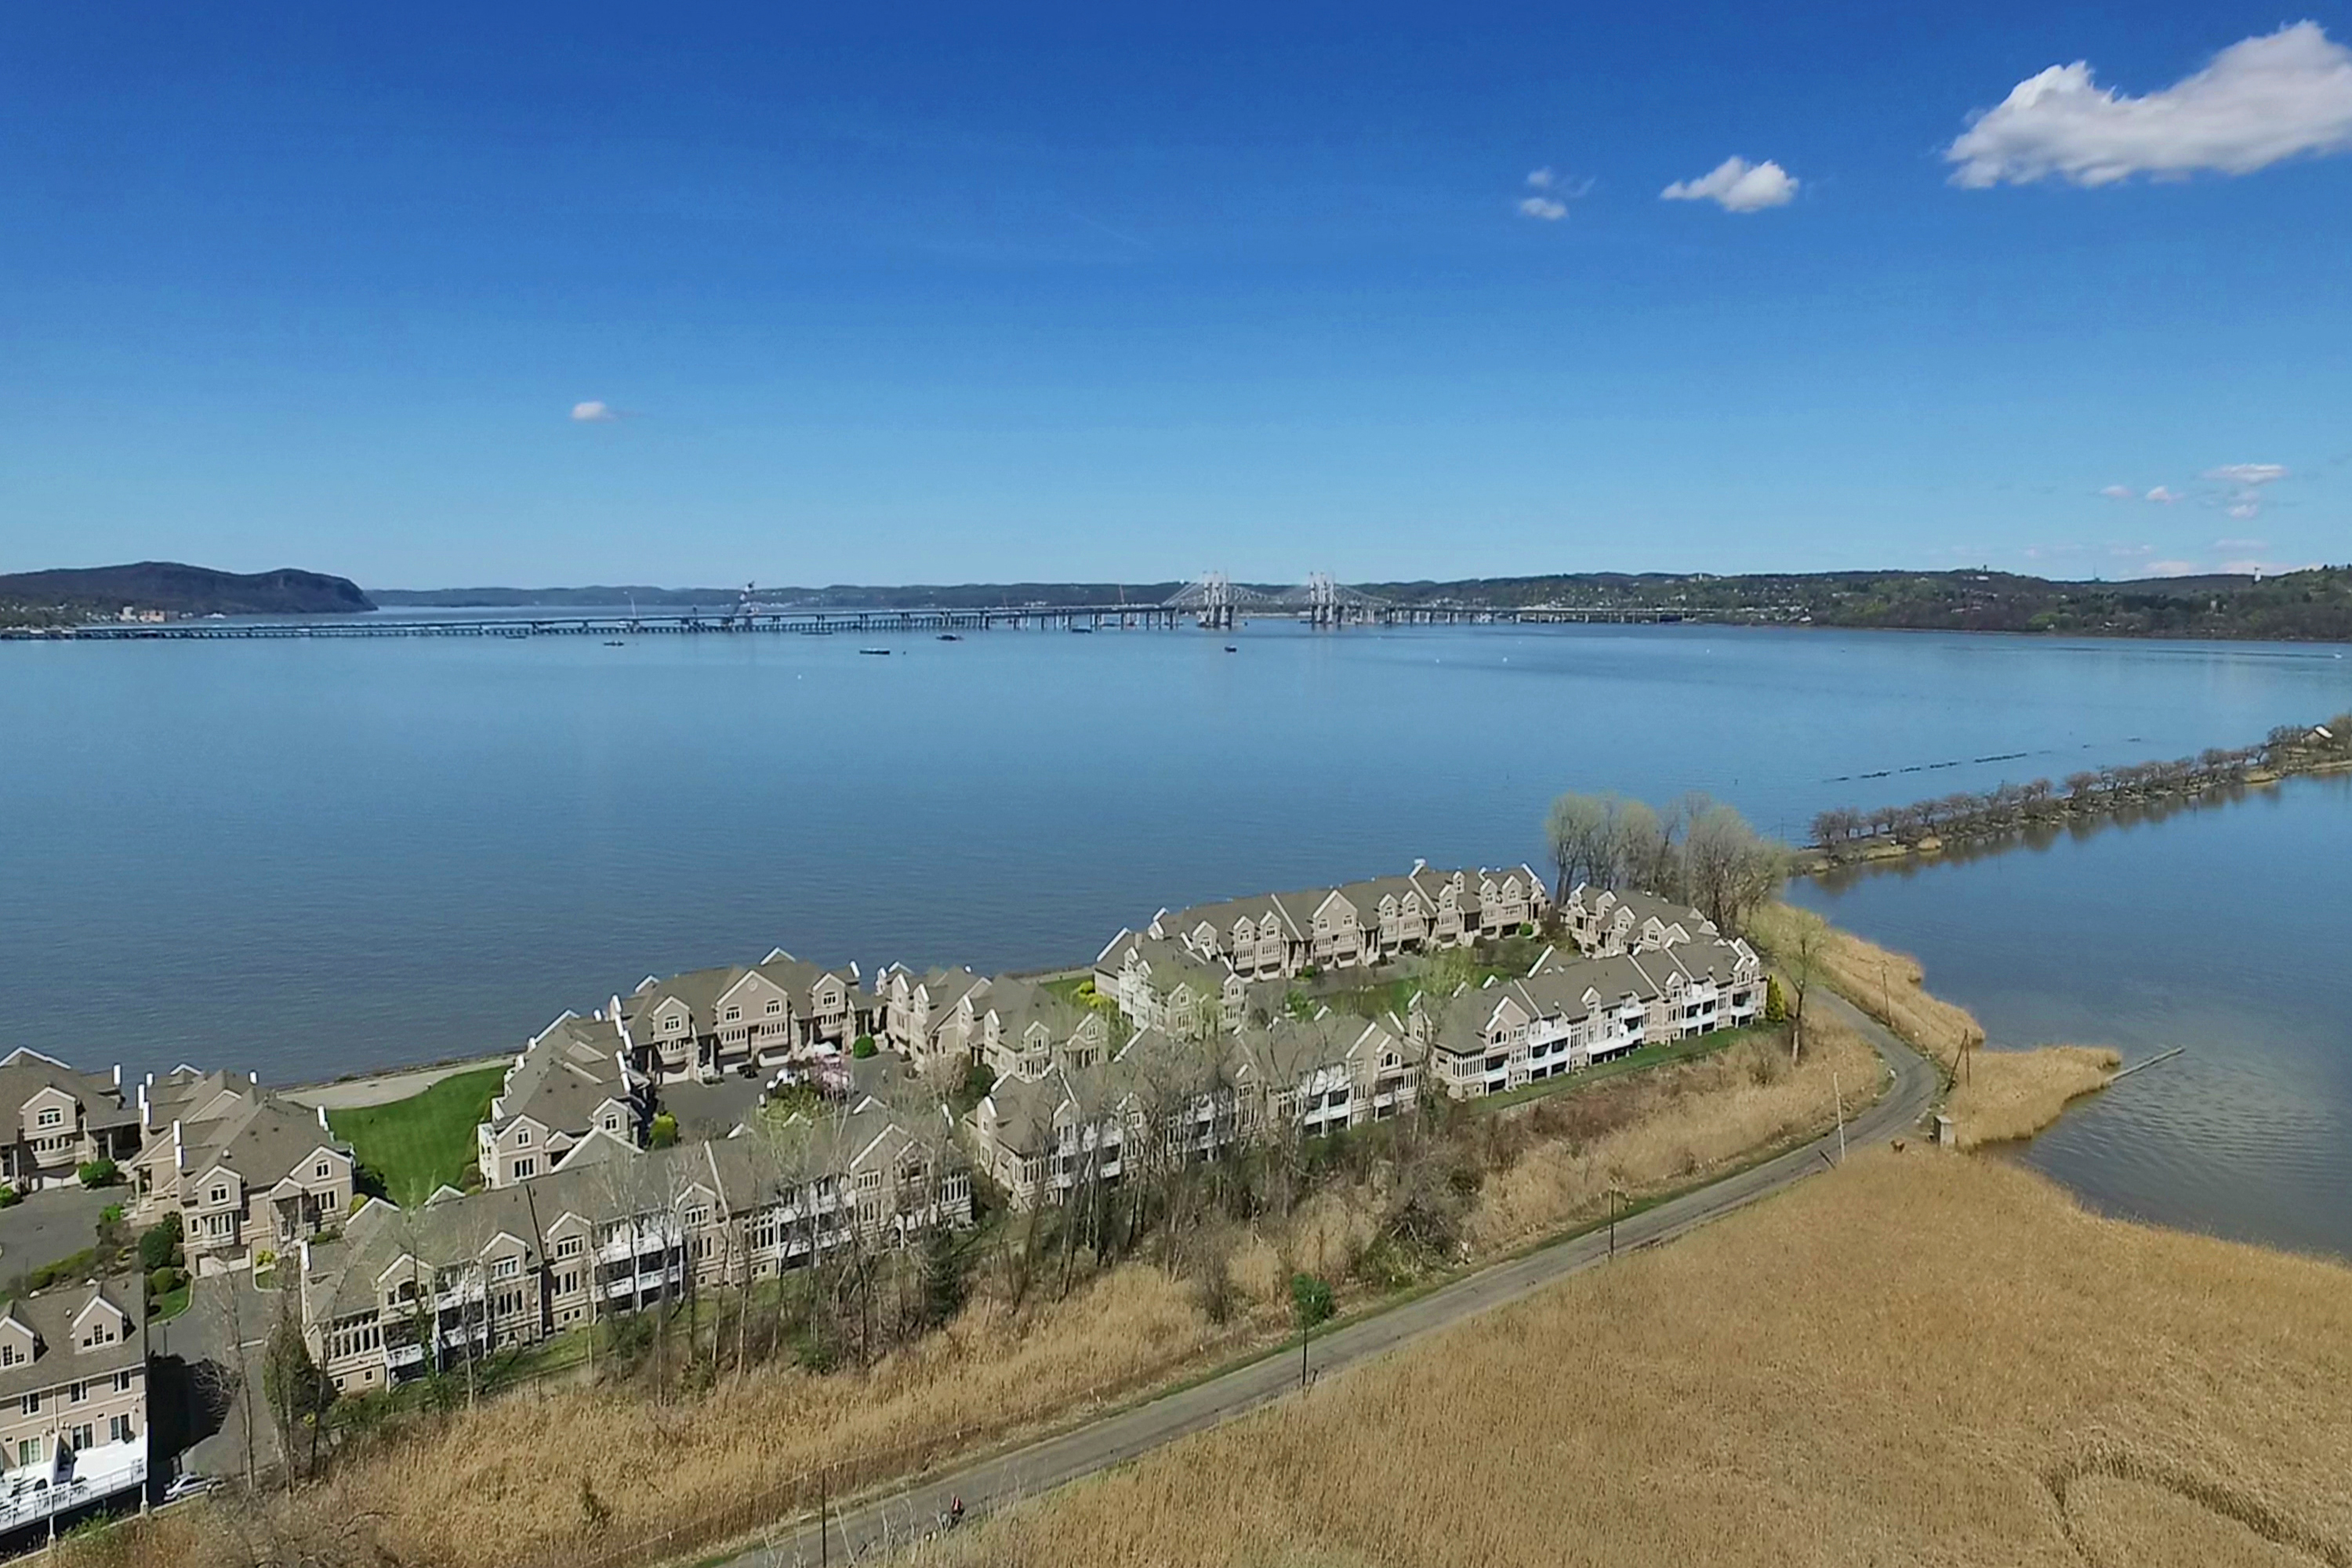 Condos for sale in Piermont and Nyack Rockland County by Donna Cox Better Homes and Gardens Rand Realty donnacox.com